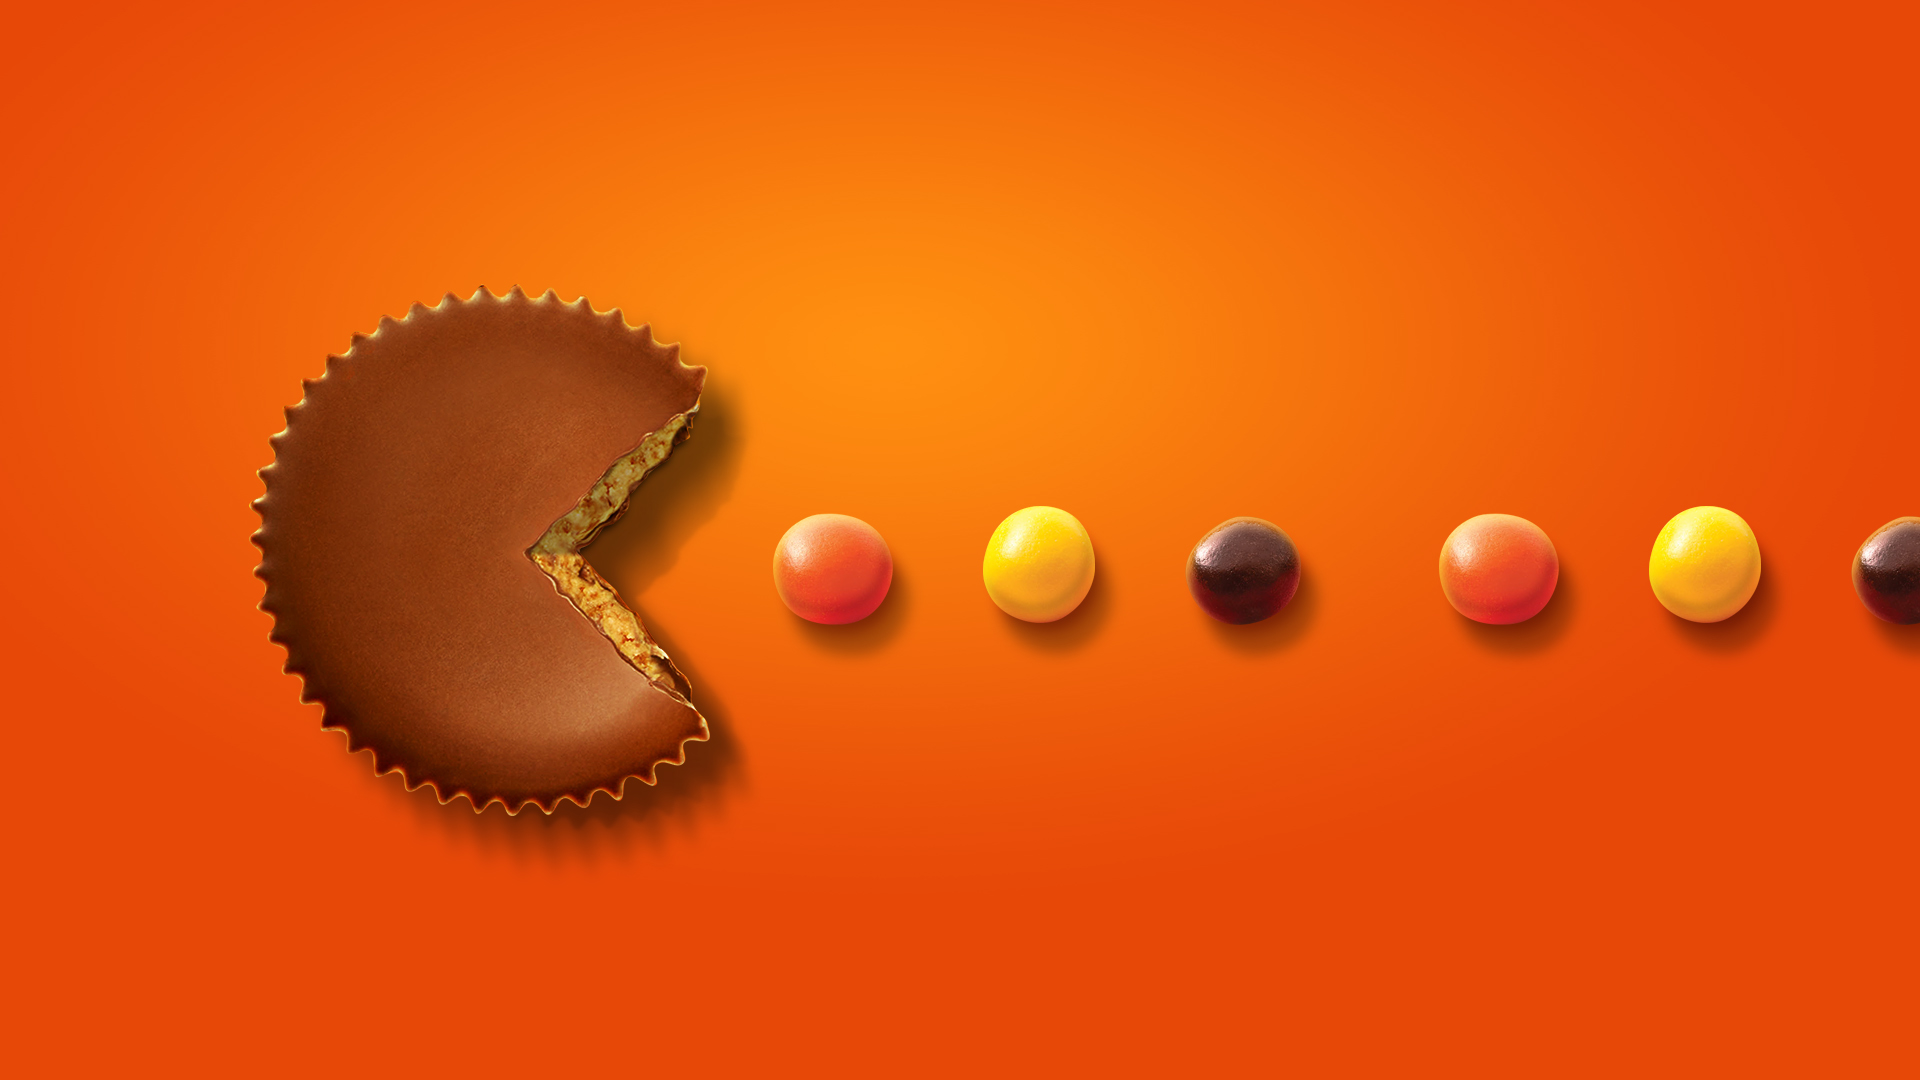 Reeses_PacMan_A_03.jpg